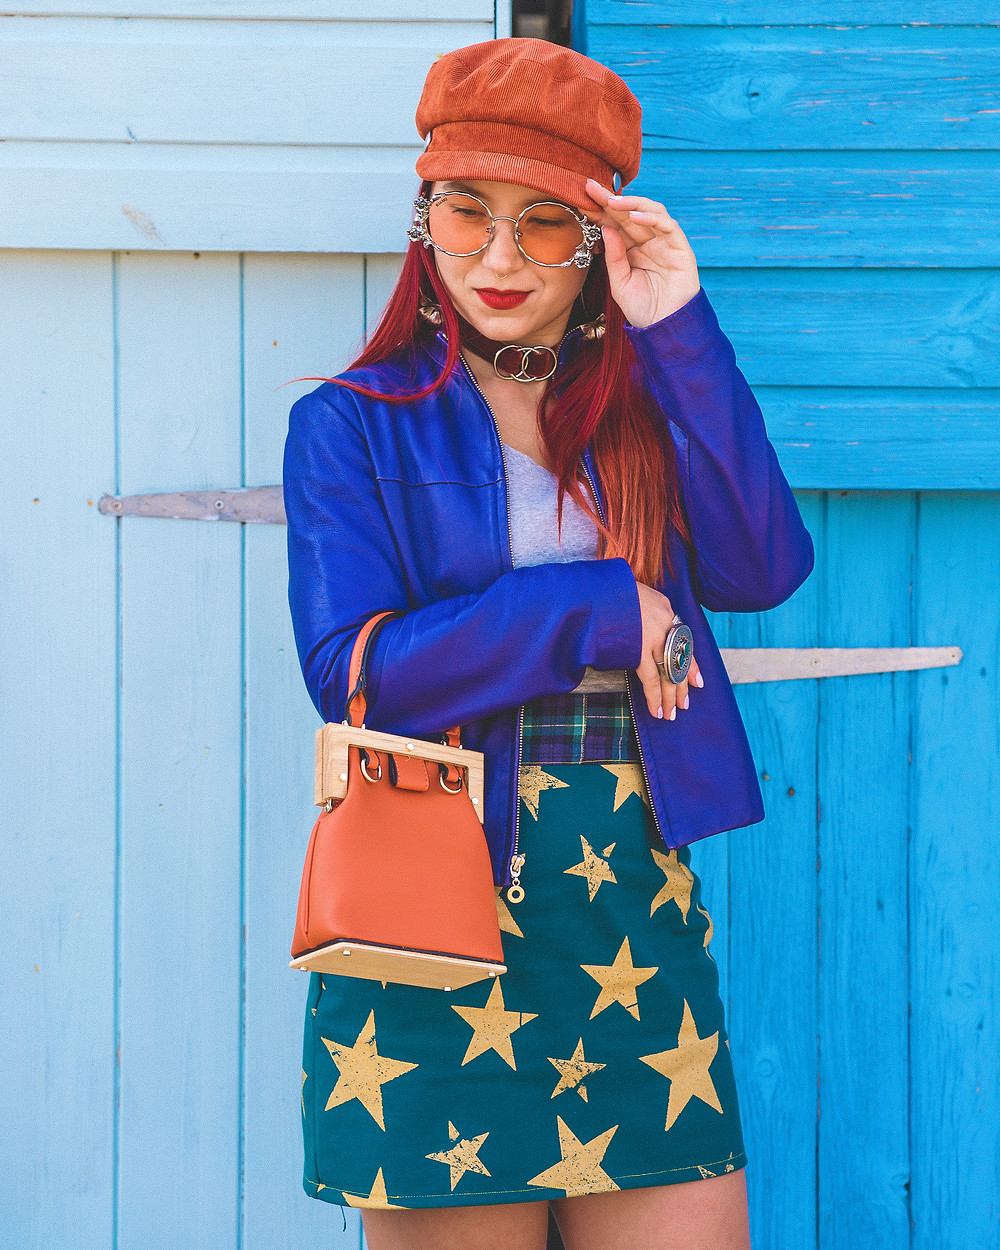 A girl wearing a starry skirt, purple leather jacket and an orange cap.